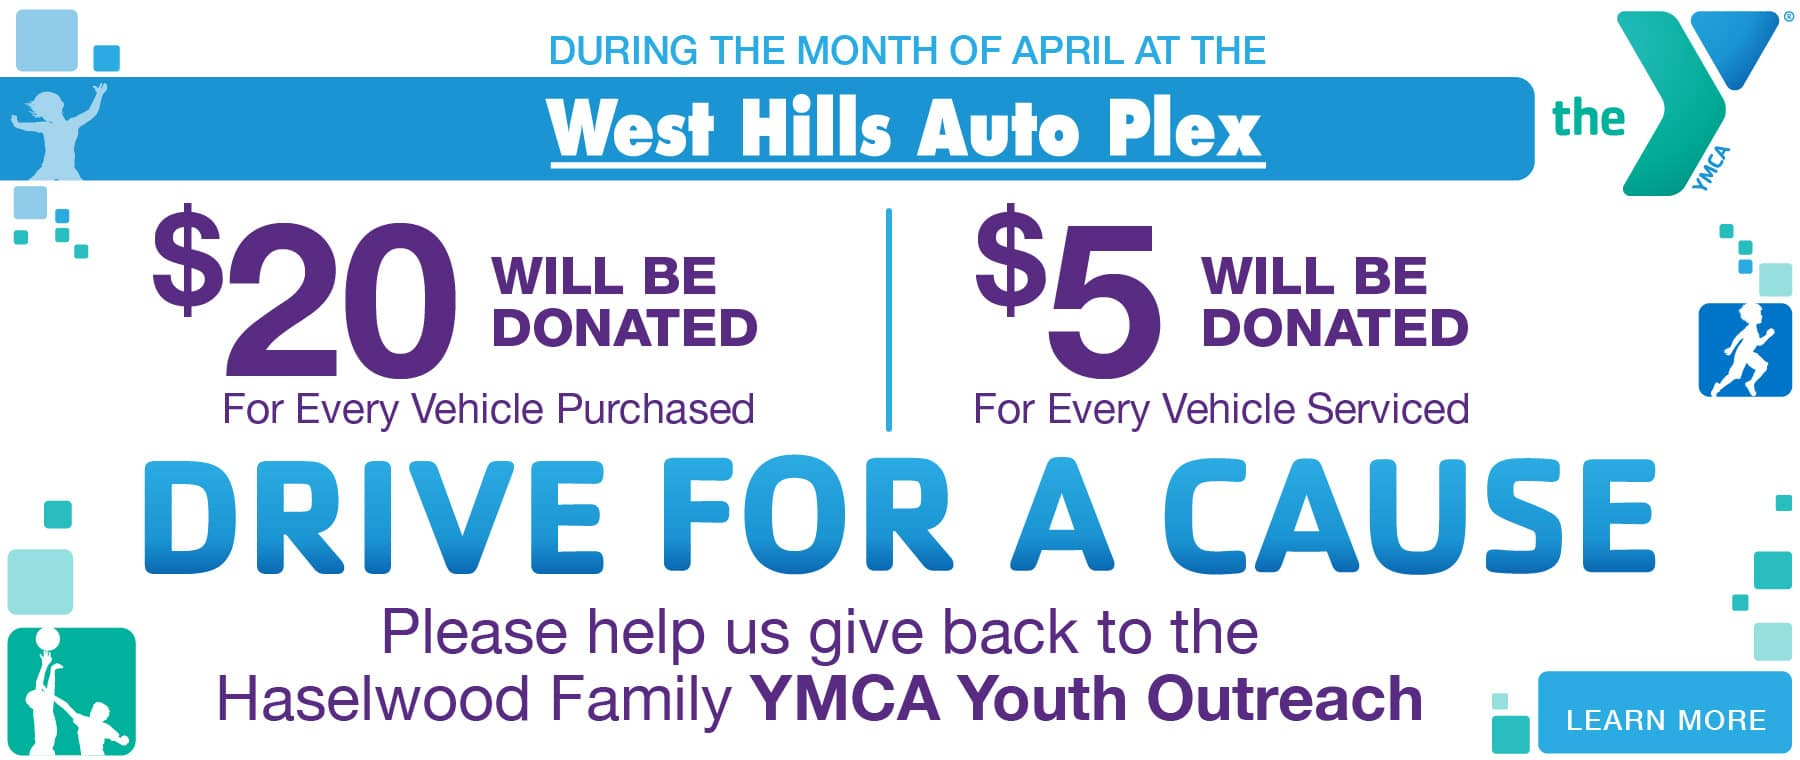 For every vehicle purchased in the month of April, Haselwood Family YMCA will receive a $20 donation. For every service repair order in the month of April, we will donate $5. *